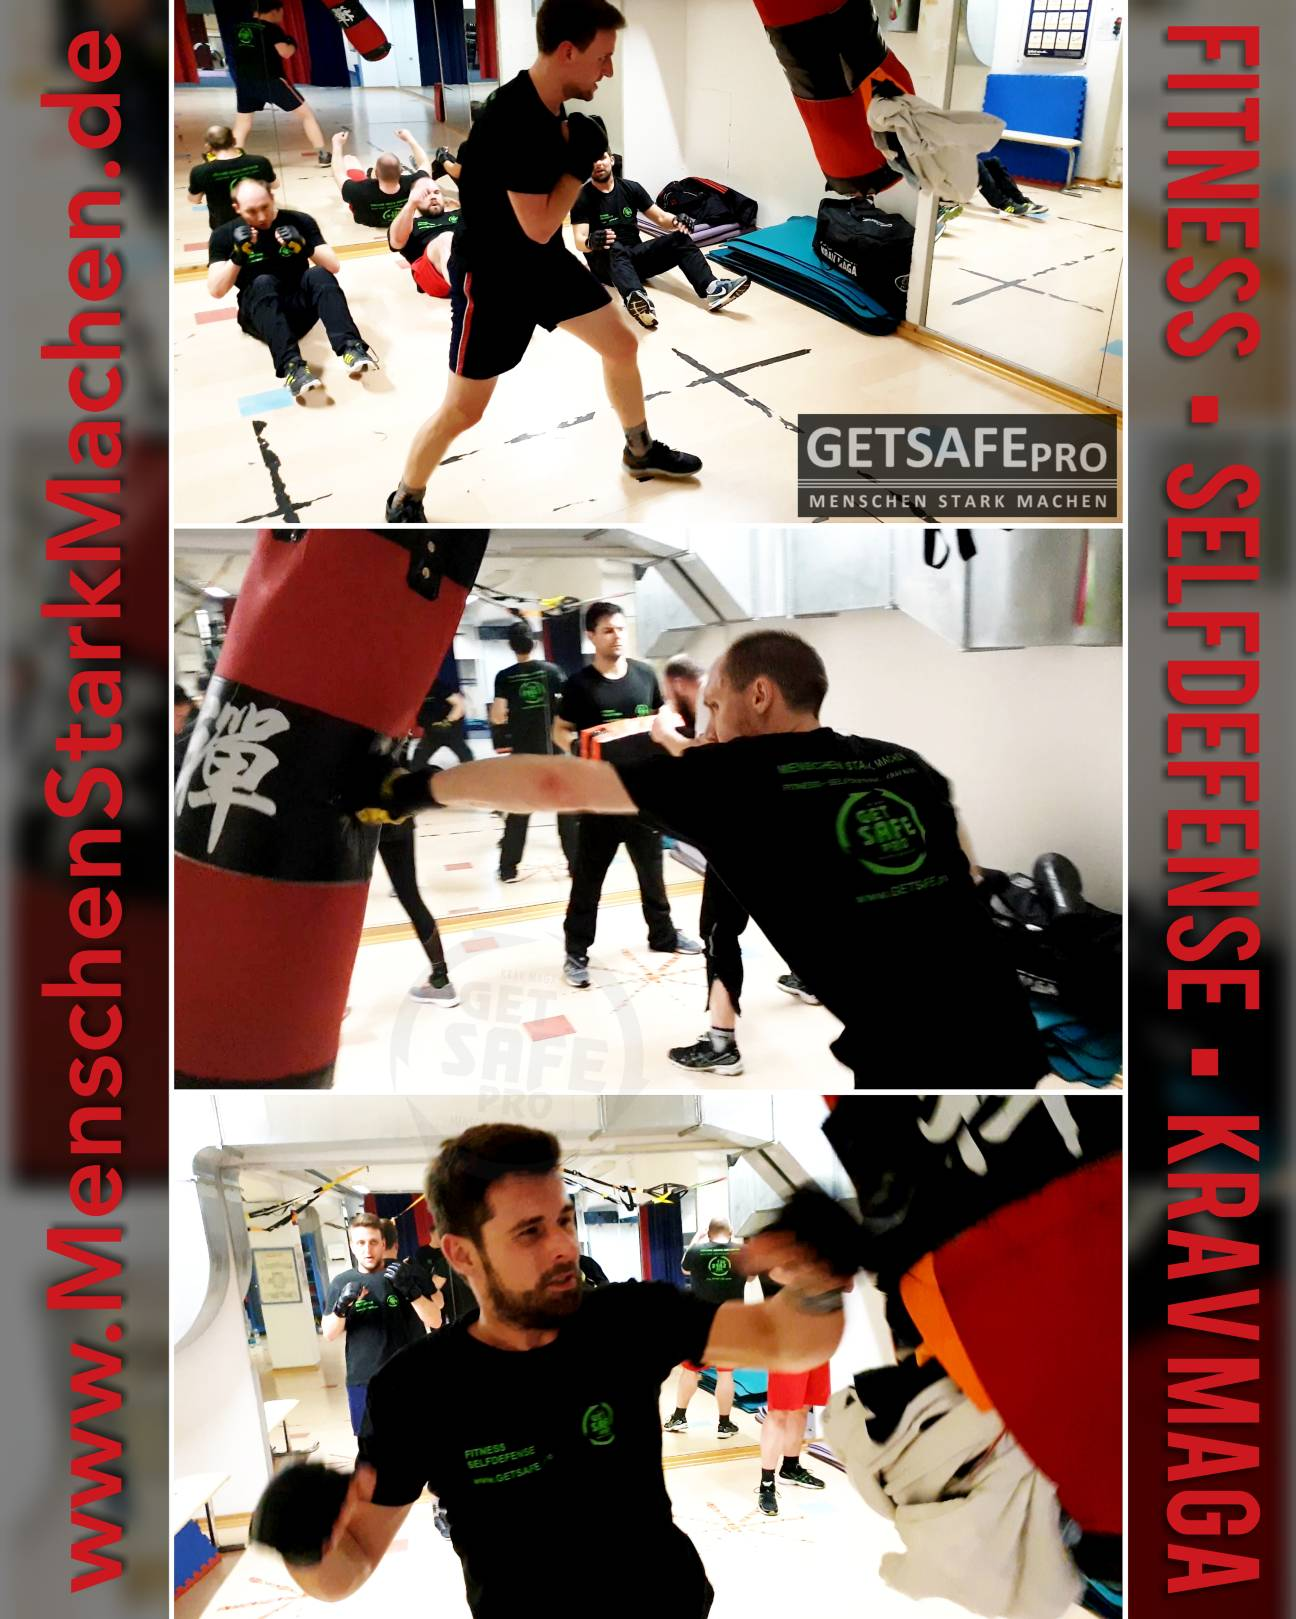 GETSAFEpro Krav Maga Training Mainz Selbstverteidigung Fitness-Center Mainz City (63)